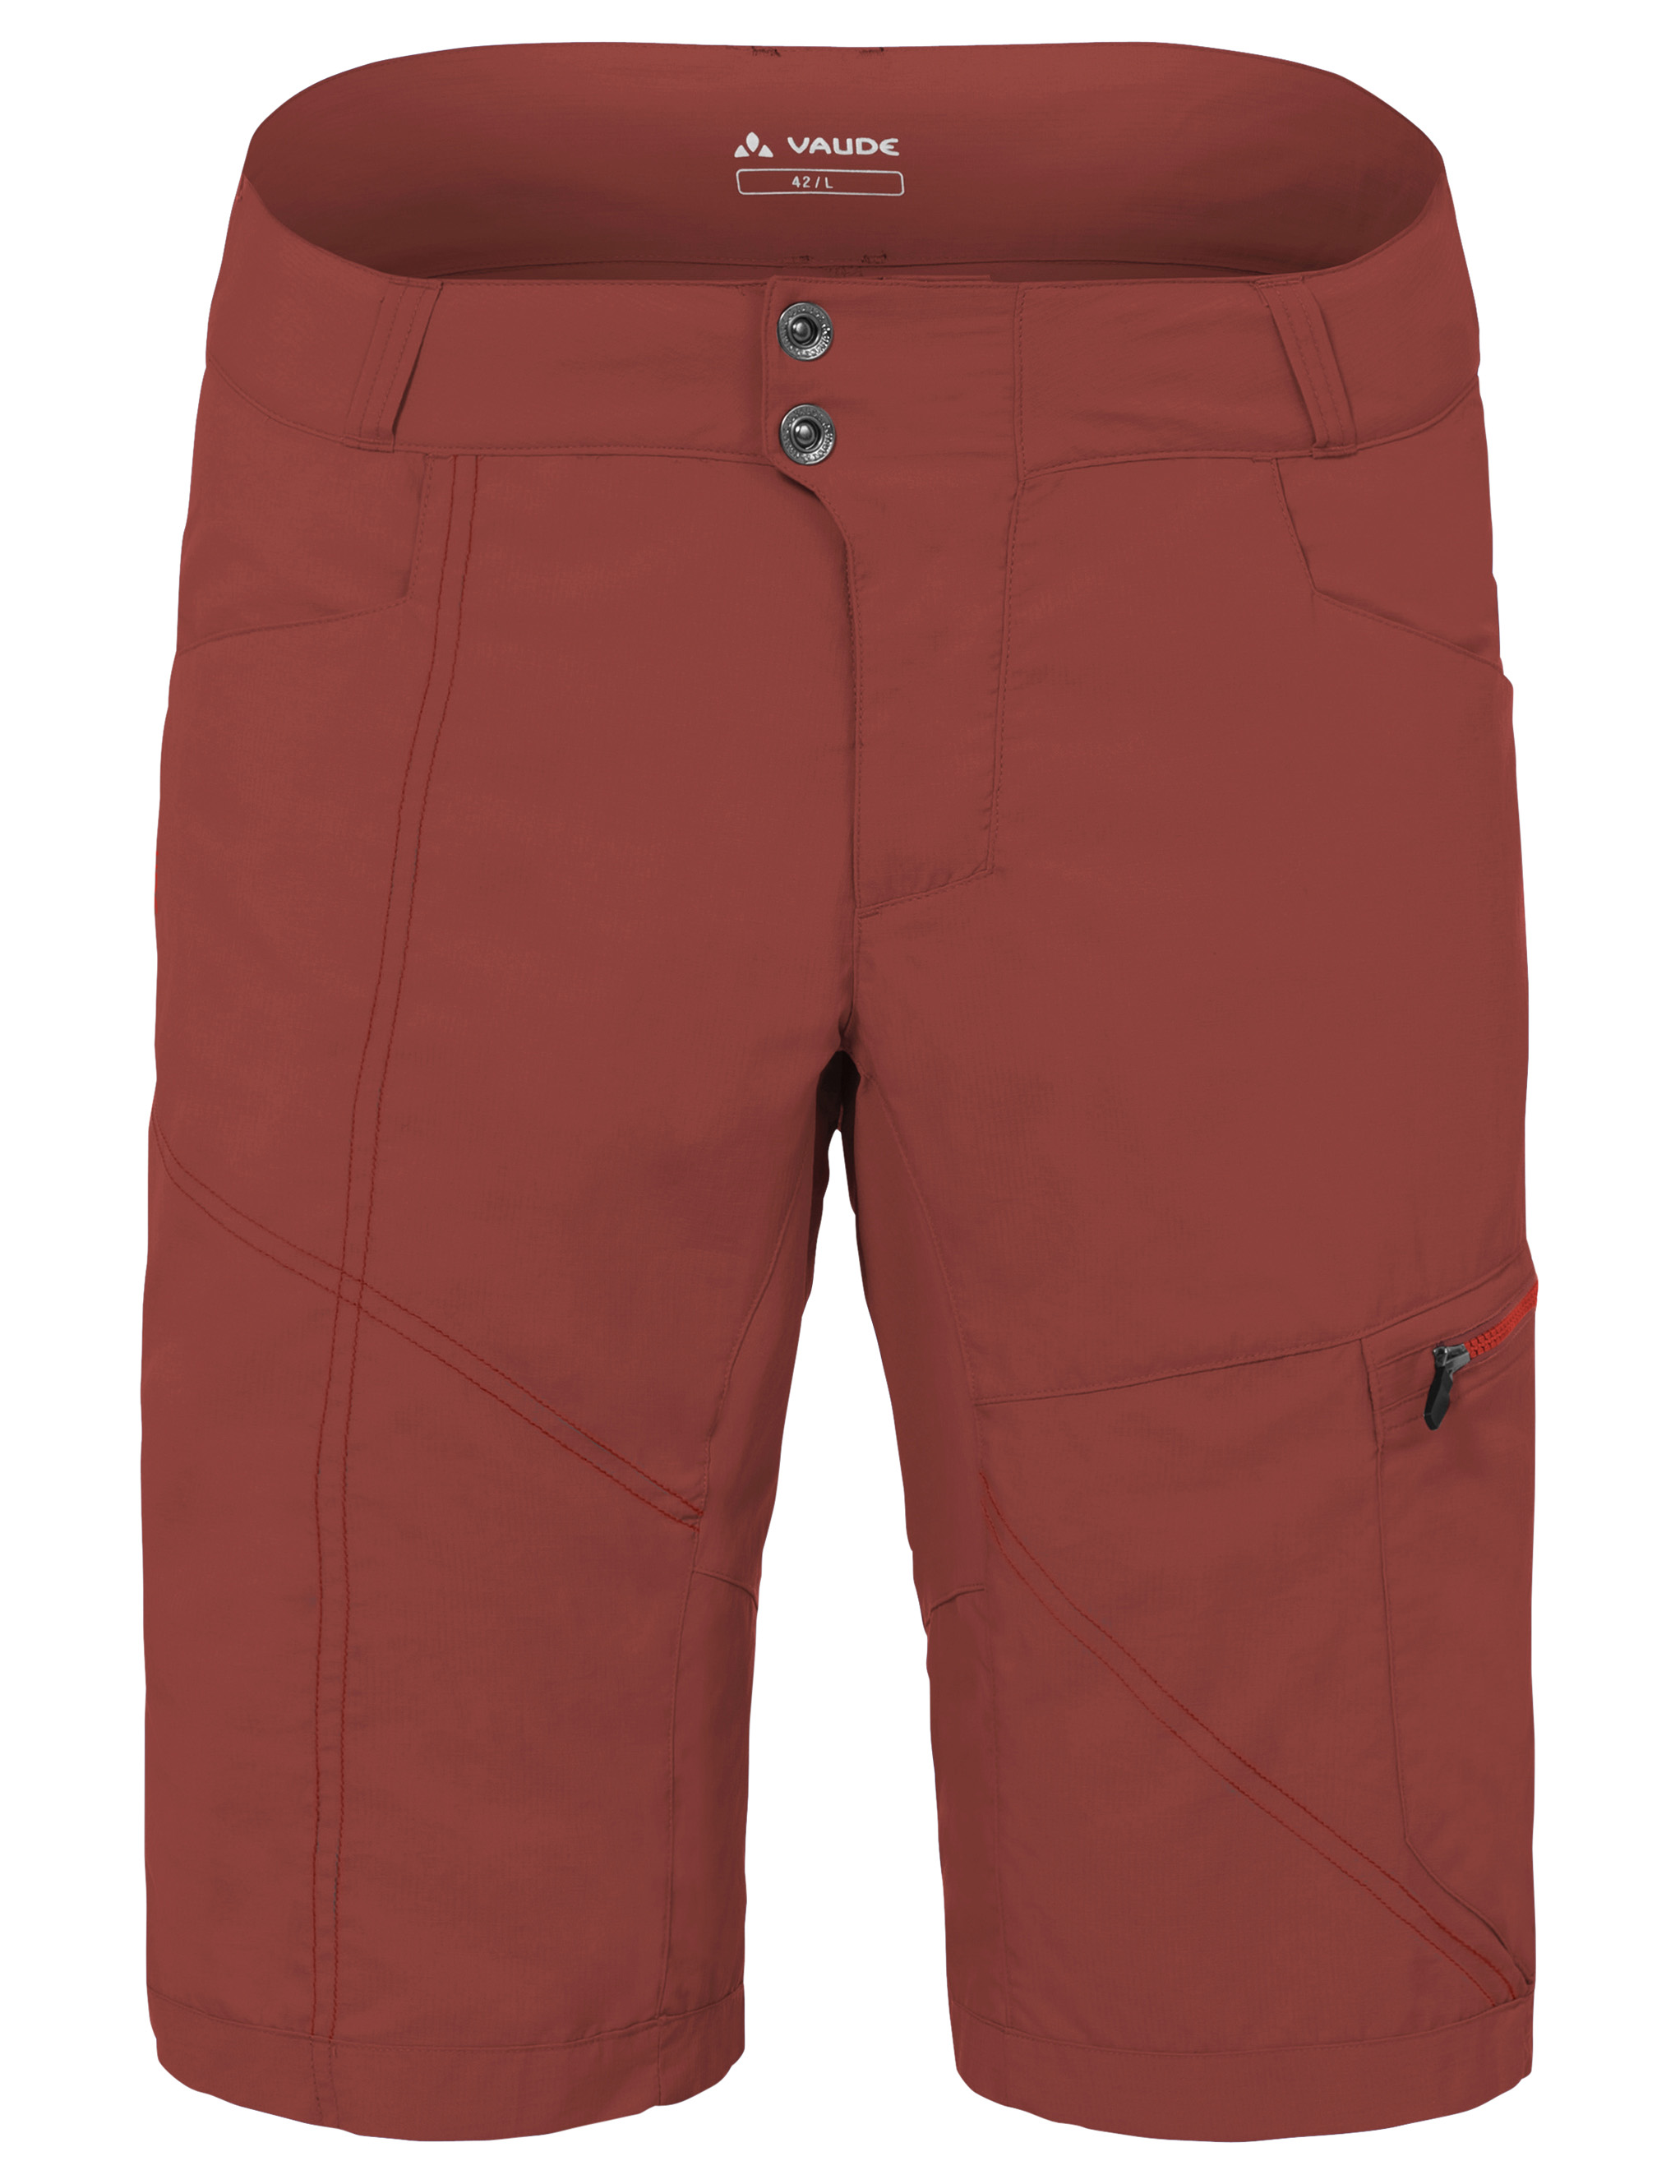 VAUDE Men´s Tamaro Shorts redwood Größe S - schneider-sports